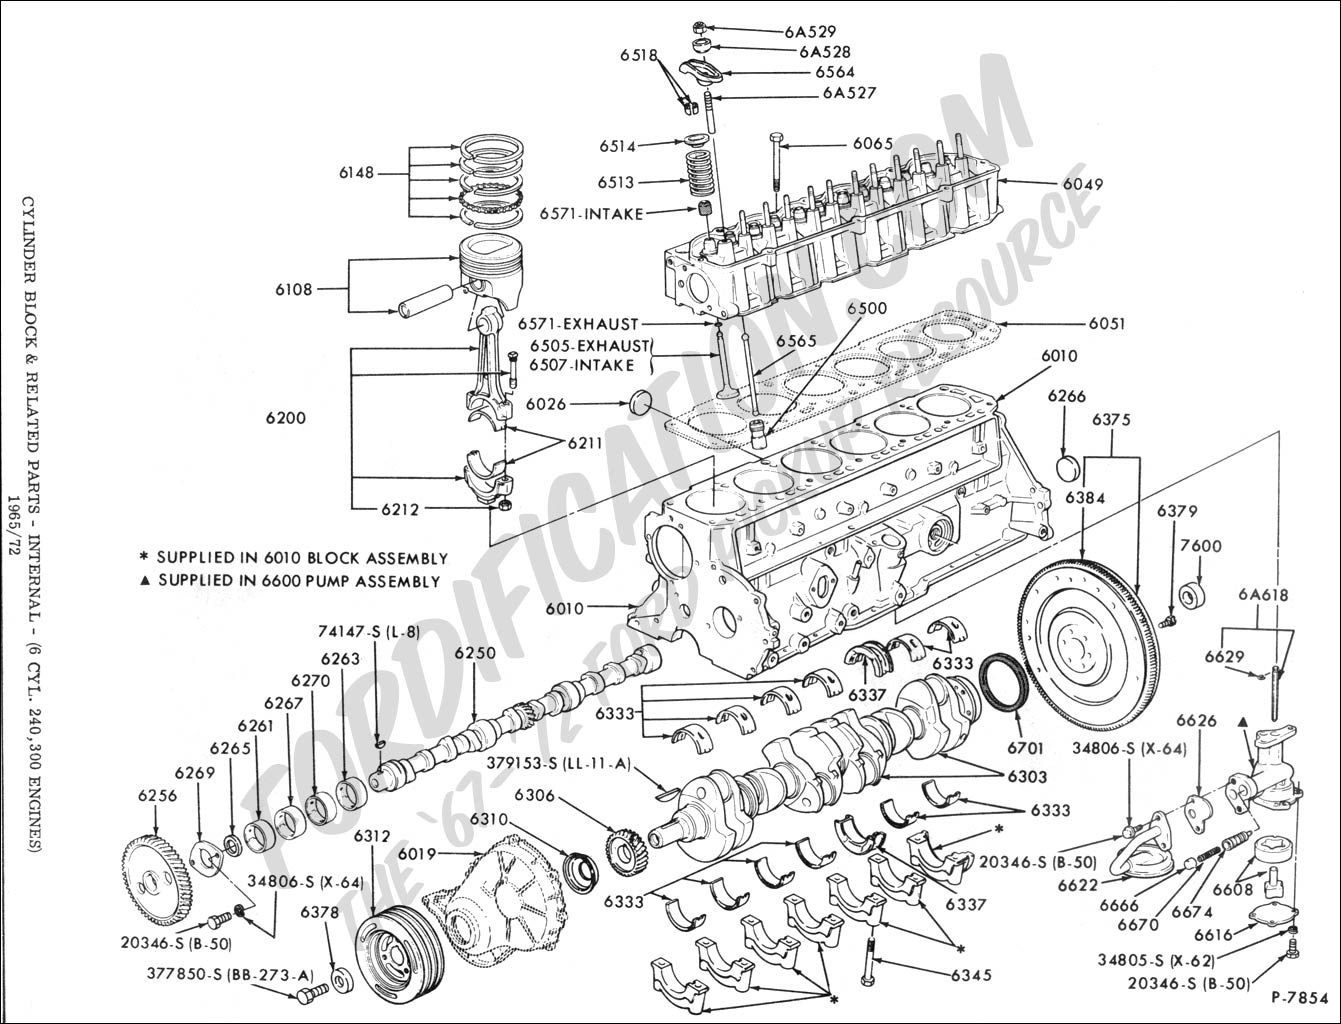 used v6 3.0 ford engine diagram